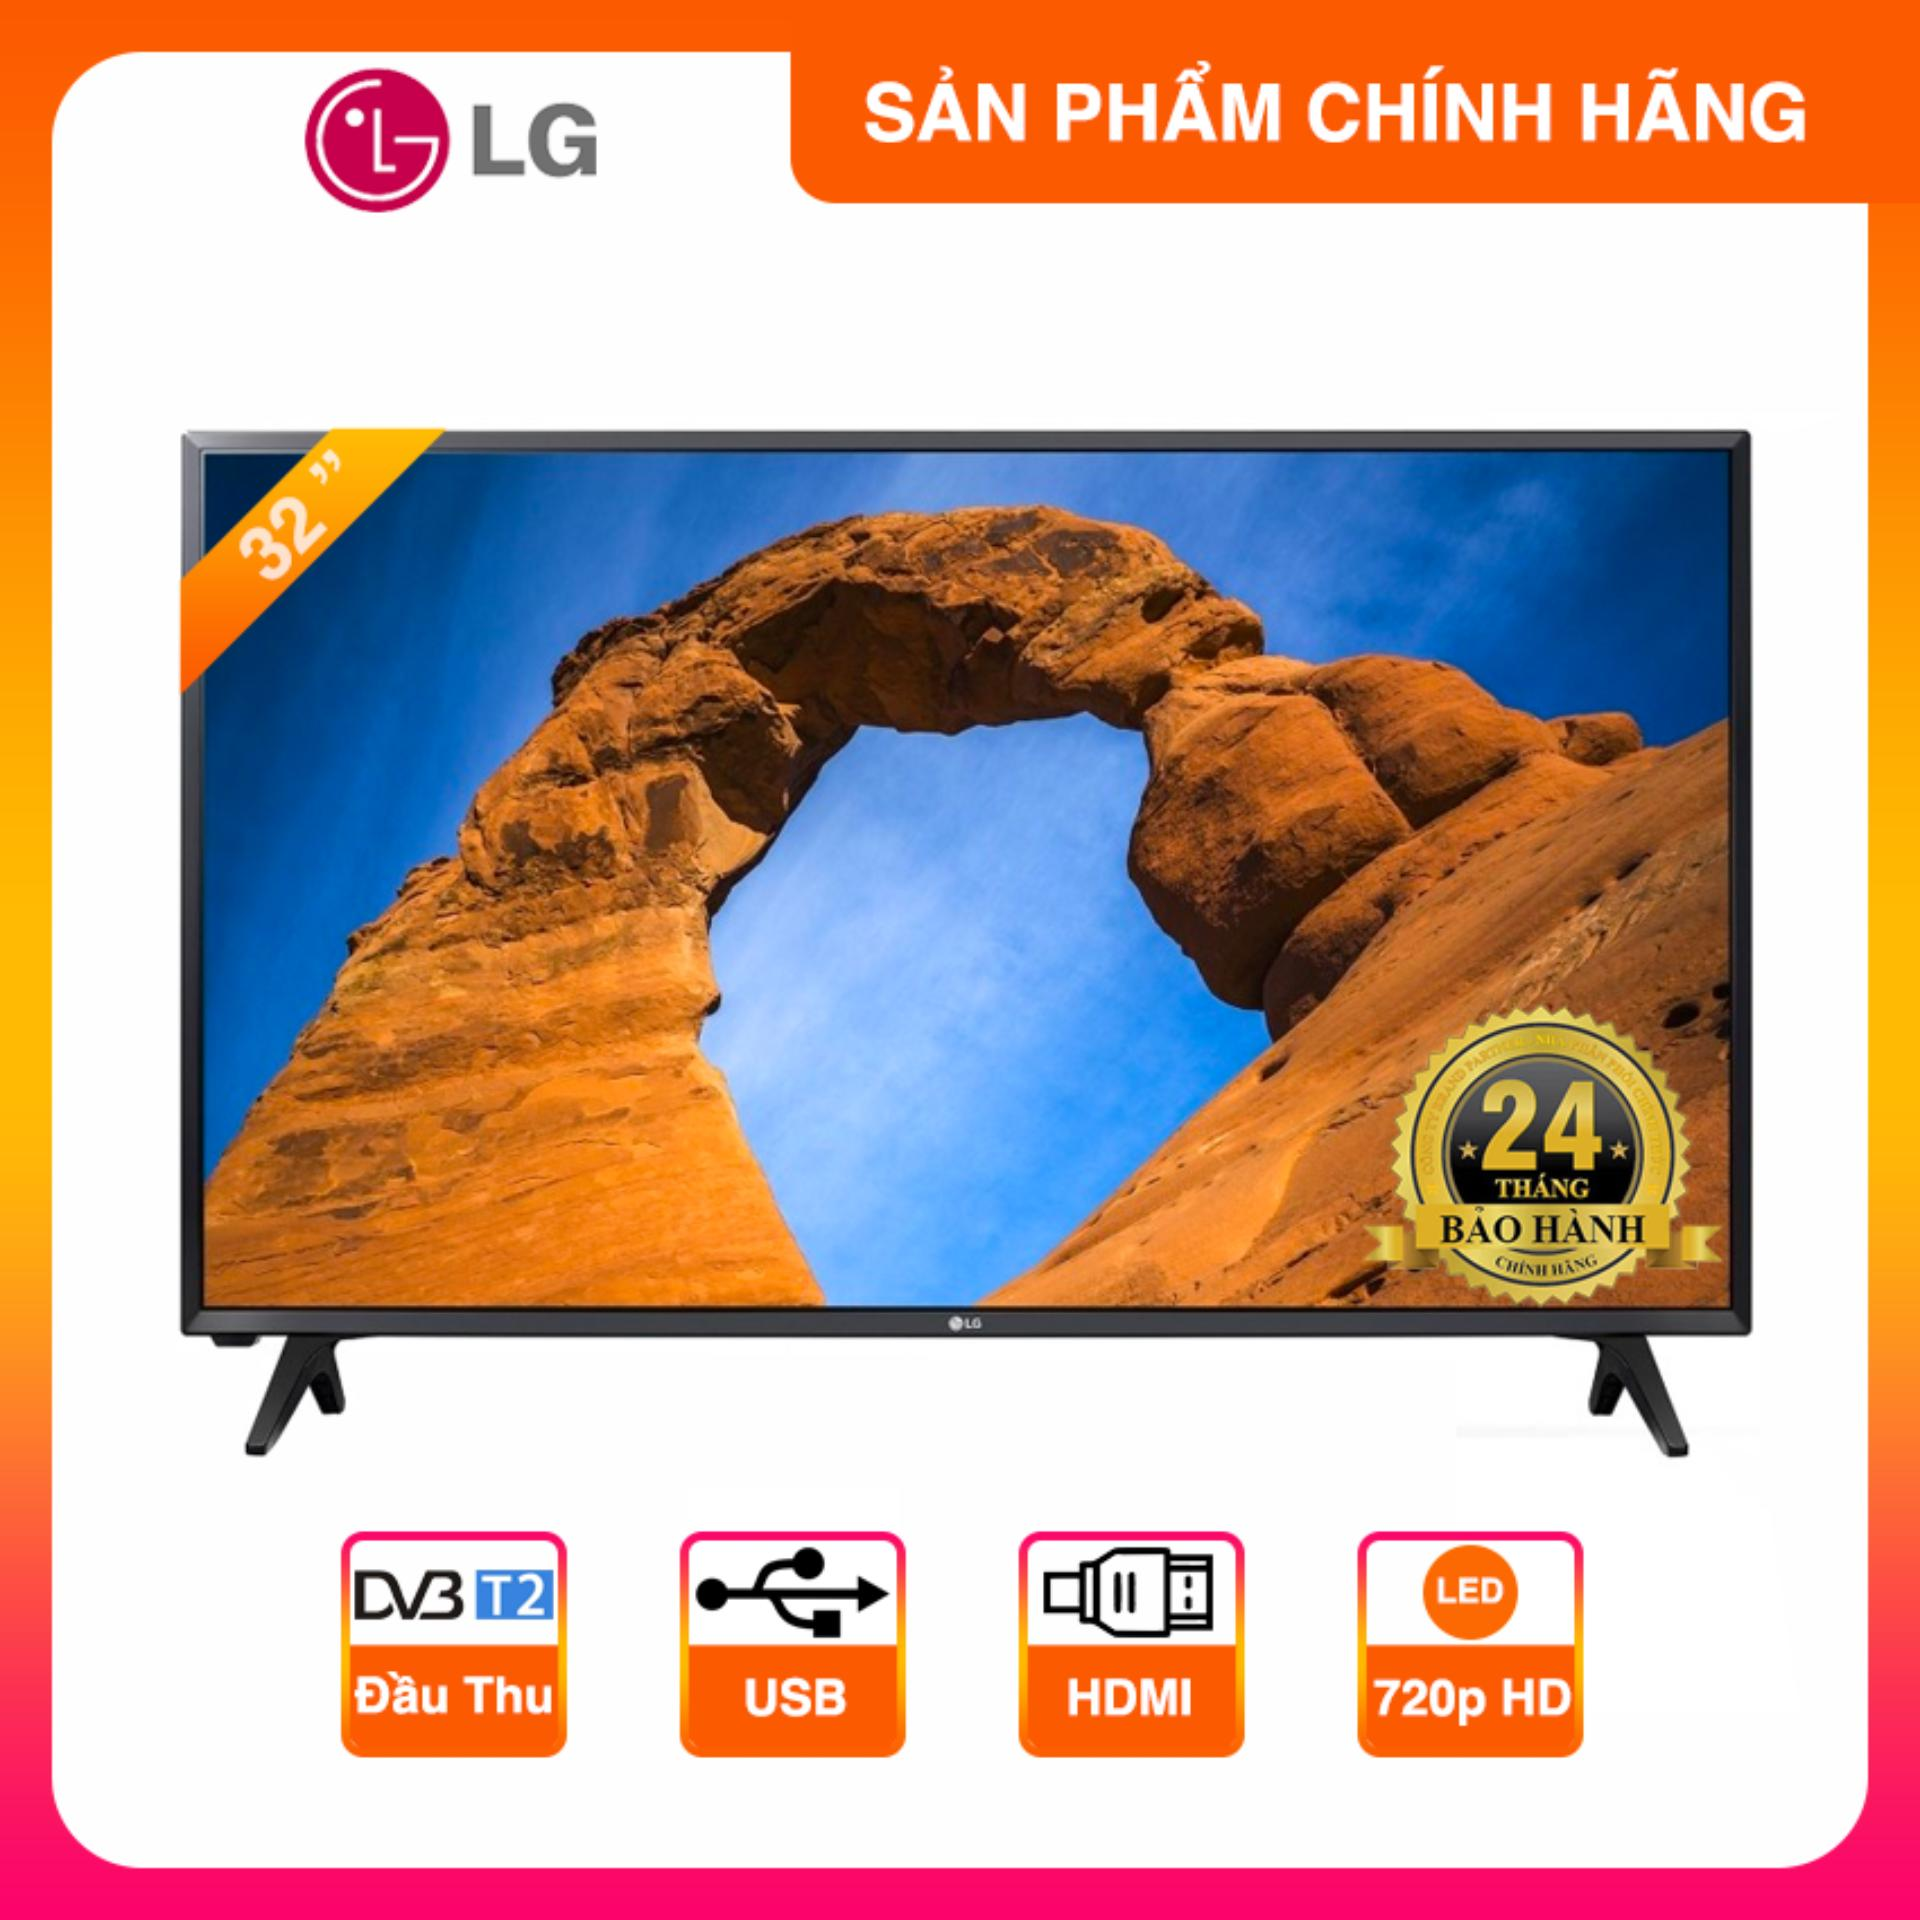 Tivi Led LG 32 inch HD - Model 32LK500BPTA (Đen)